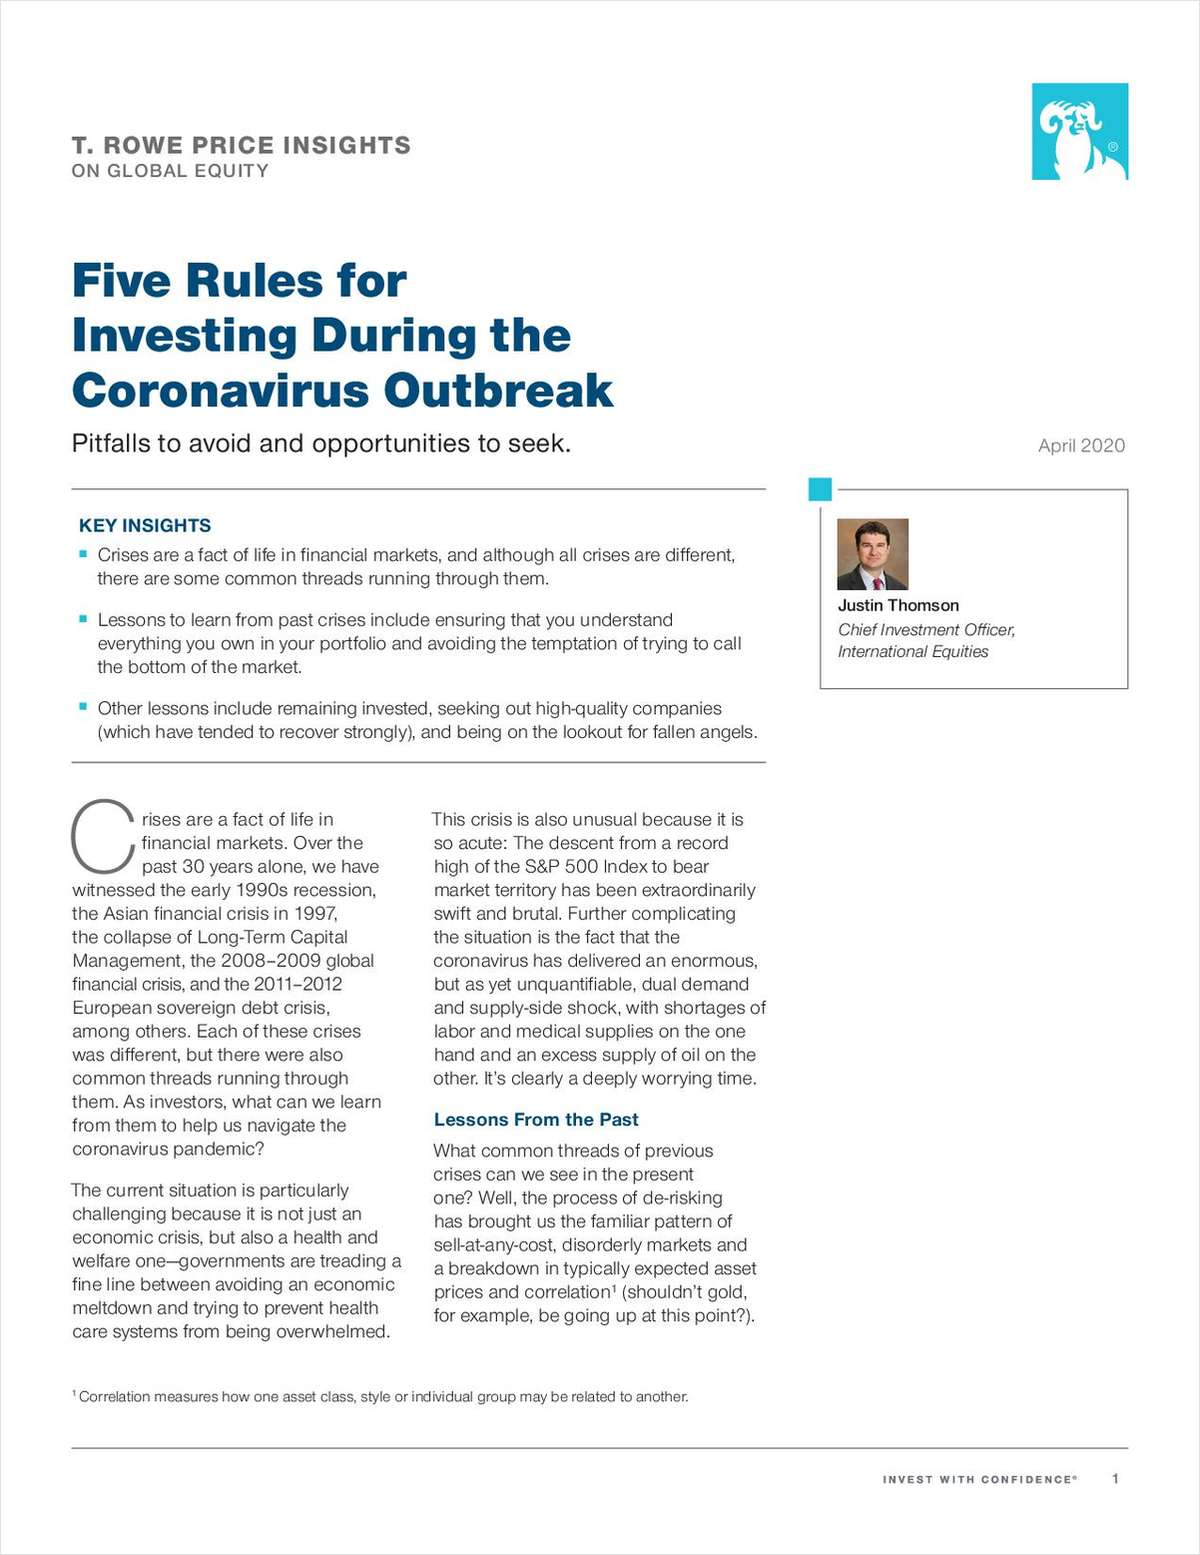 Five Rules for Investing During the Coronavirus Outbreak